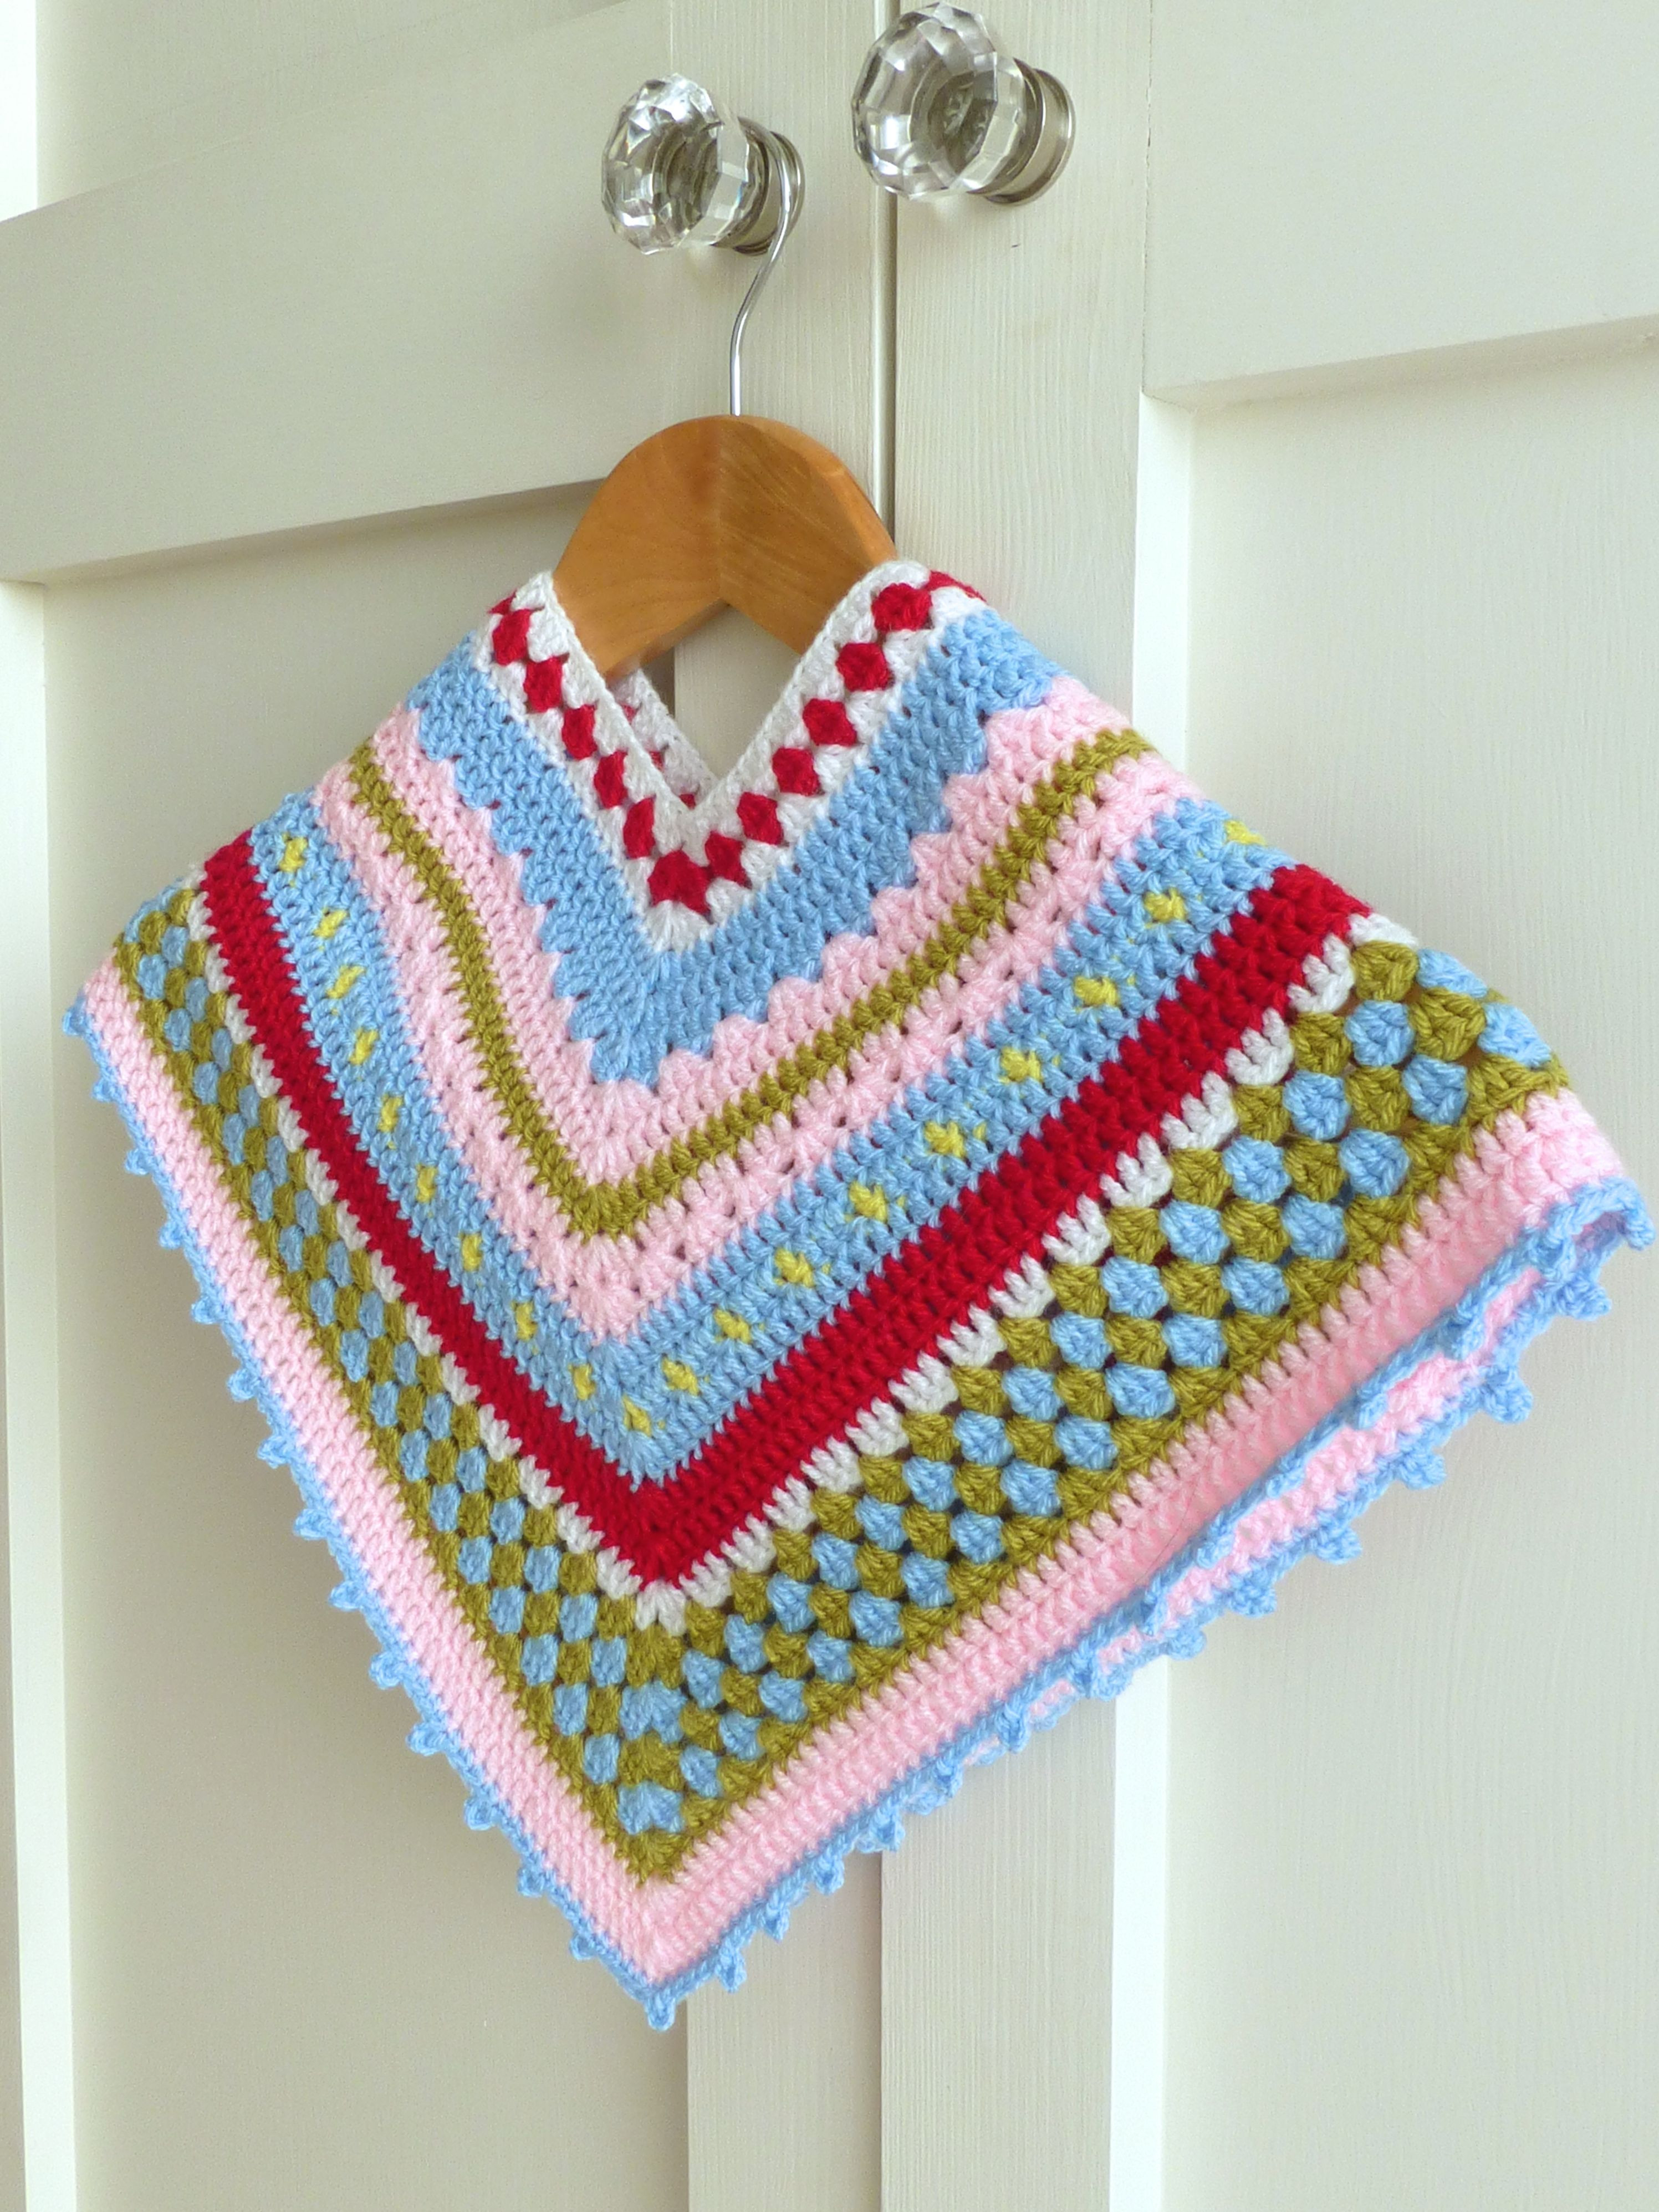 Crochet Child Poncho Best Of Crochet Baby Poncho Tutorial Of Crochet Child Poncho Fresh Easy Poncho to Crochet with Puff Stitch Rows